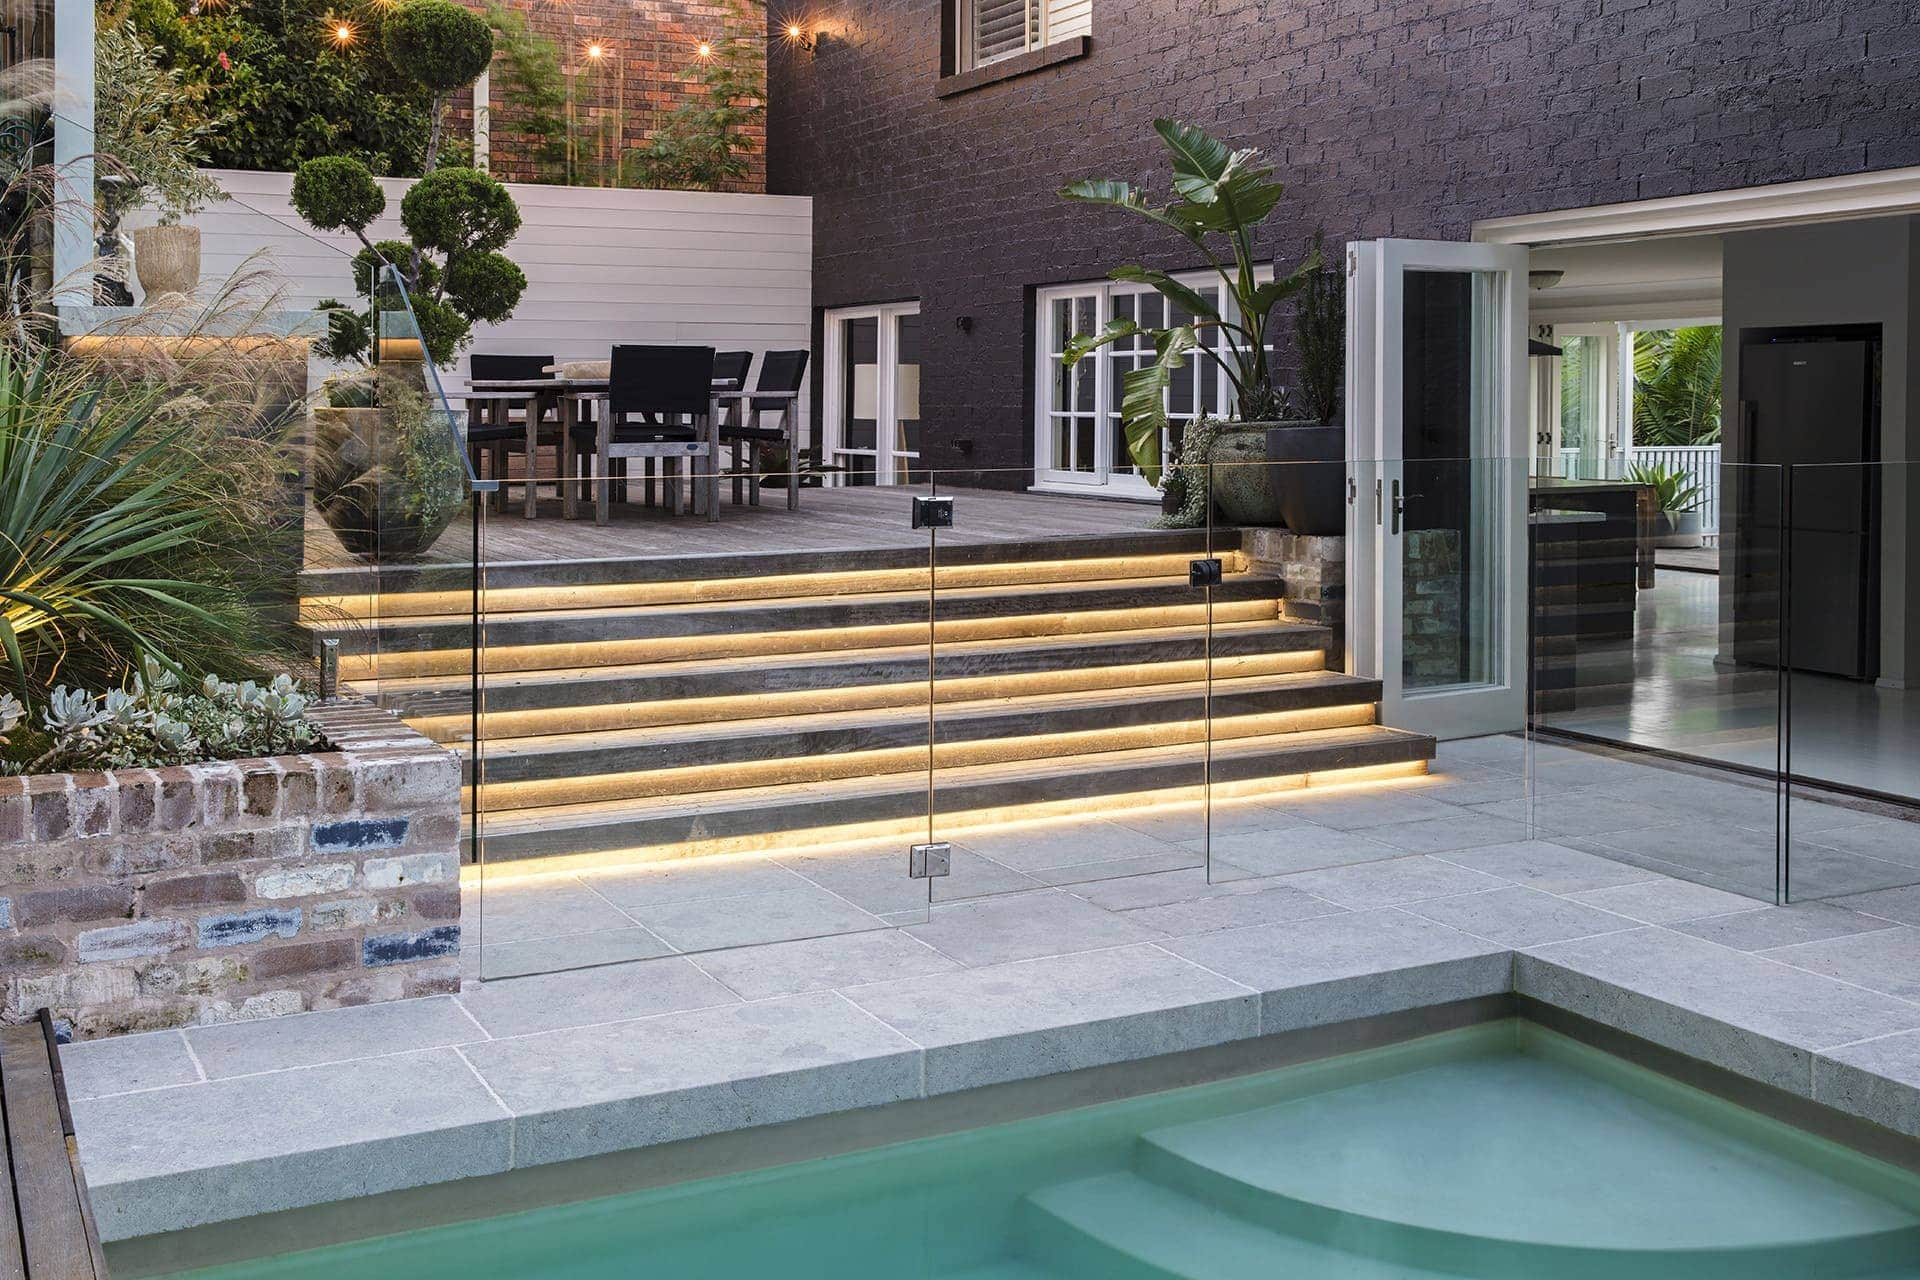 Strip lighting under stairs in pool area backyard